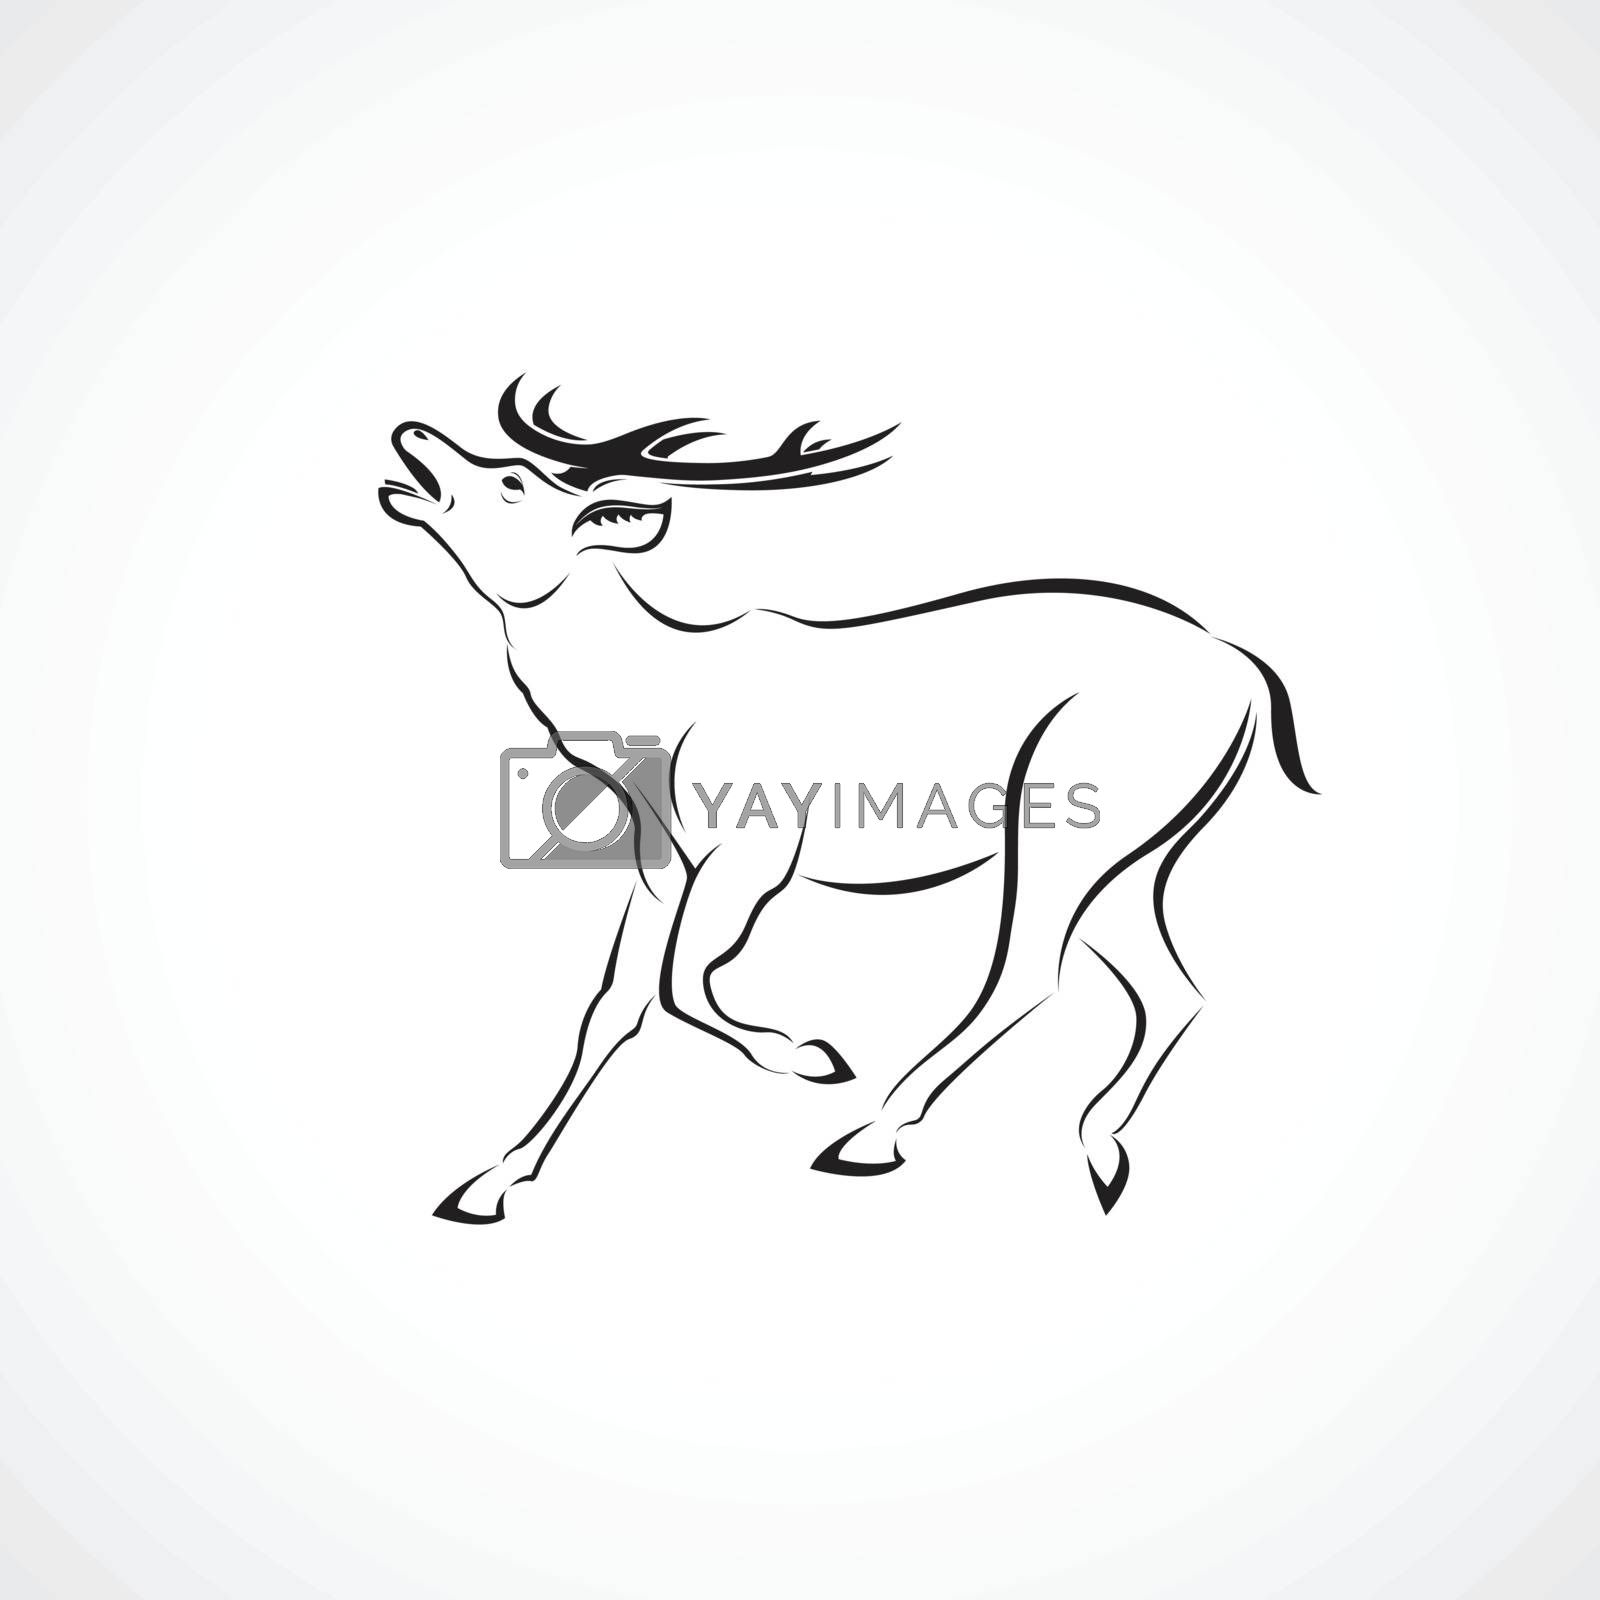 Vector of a deer design on white background. Wild Animals. Easy editable layered vector illustration.